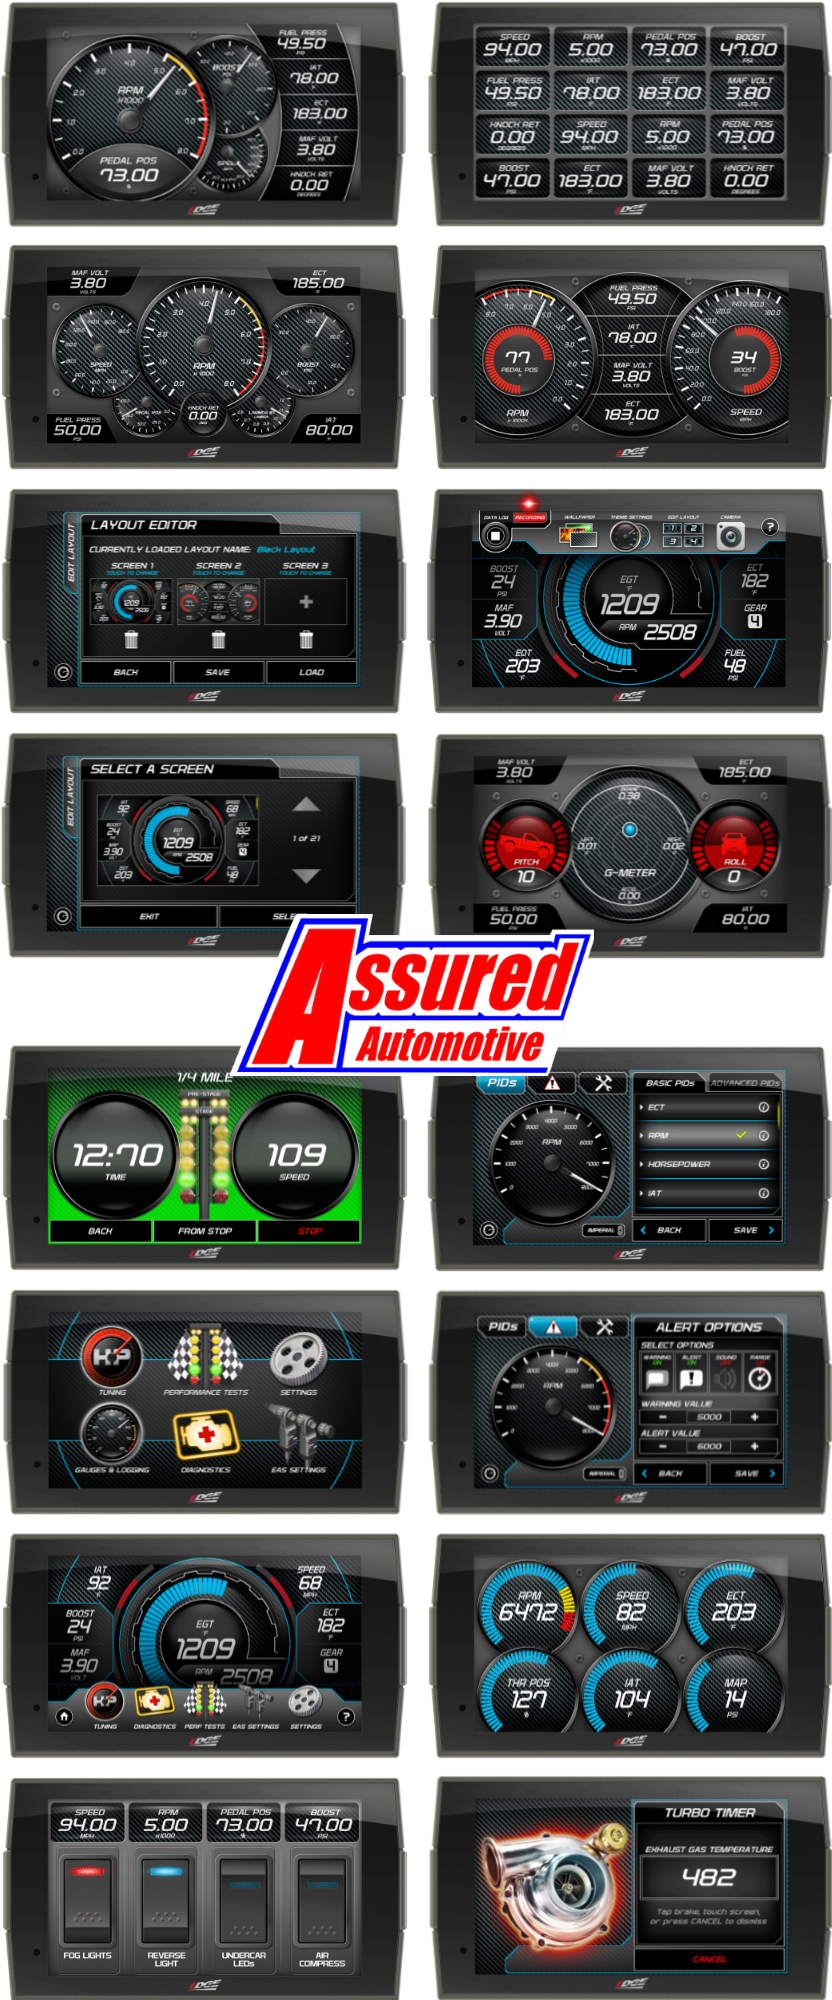 EDGE PRODUCTS Tuners by Assured Automotive Co.